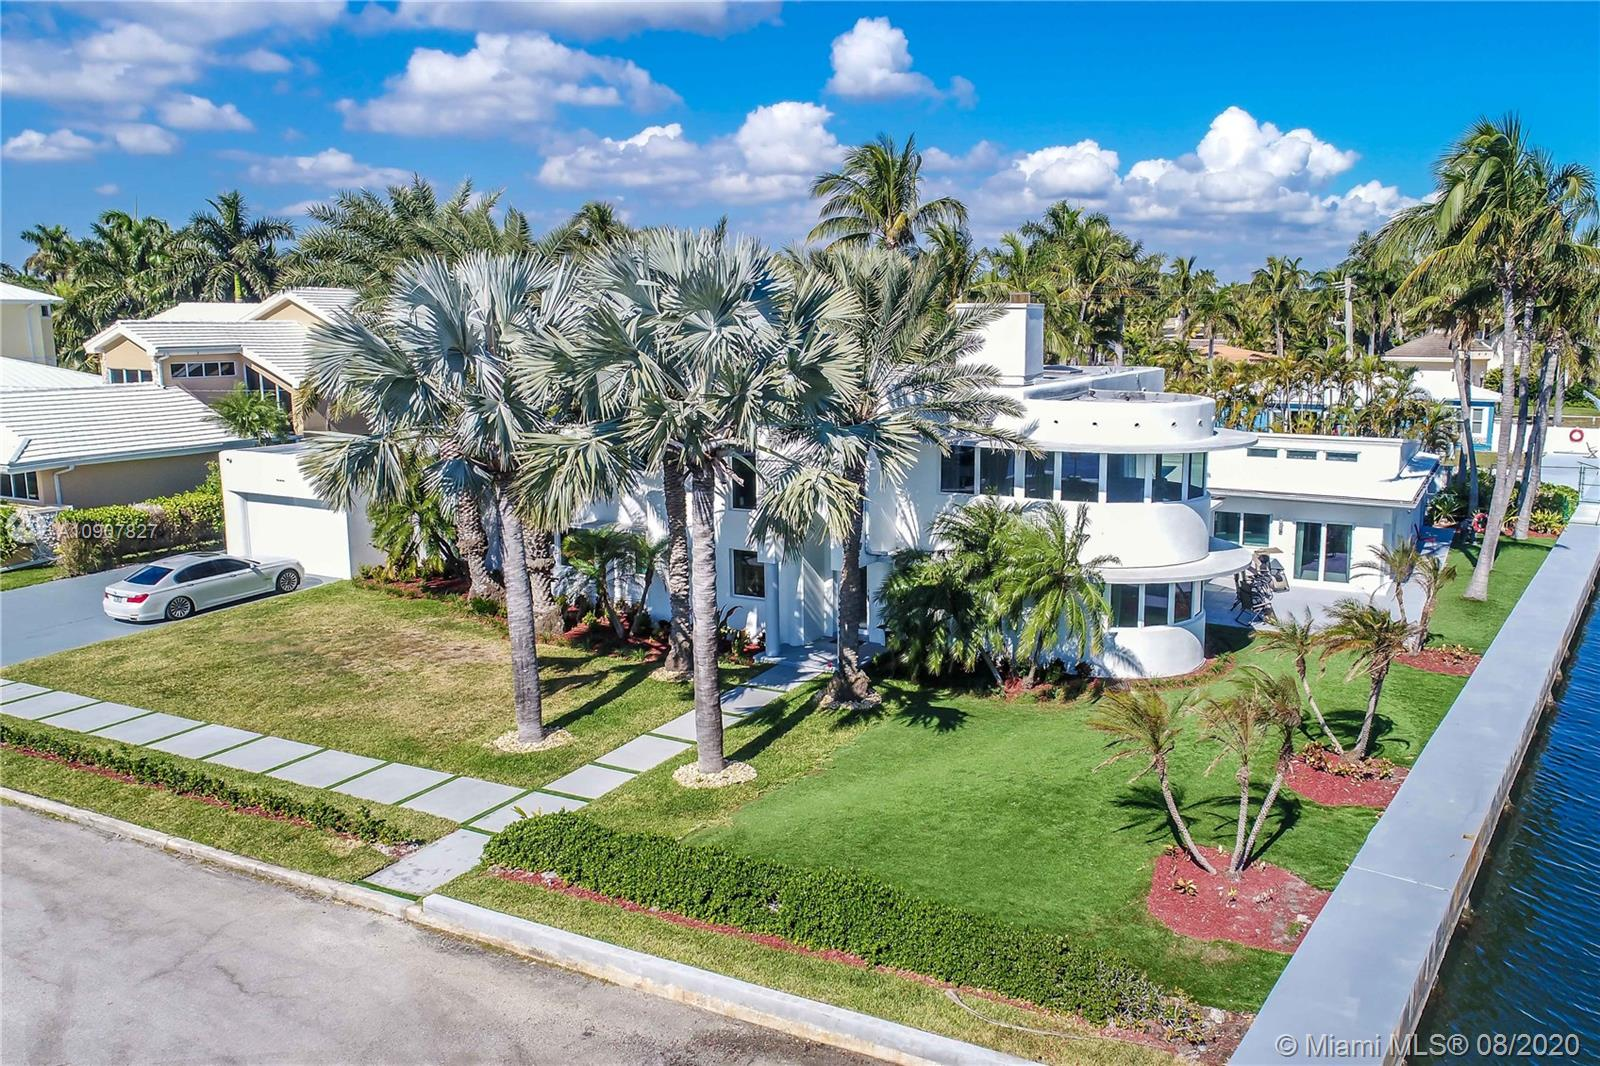 PERFECT SHORT TERM RENTAL AIR B AND B. STUNNING DIRECT INTRACOASTAL WATERFRONT ESTATE WITH BOAT DOCK AND 16KLB LIFT ON DEEP WATER WITH NO FIXED BRIDGES. PROFESSIONALLY DESIGNED MASTERPIECE IN HOLLYWOOD LAKES. 2 MASTER SUITES UPSTAIRS AND 3 BEDROOMS DOWNSTAIRS. IMPACT DOORS AND WINDOWS. BEAUTIFUL WATERFRONT SETTING. VERY UNIQUE INDOOR HEATED POOL WITH A FULL BATH. WINE CELLAR~OPEN FLOORPAN~STAINLESS STEEL AND WOOD STAIRCASE~SCENIC VIEWS EVERYWHERE COMPLETE WITH AN OCEAN VIEW FROM THE MASTER BEDROOM. NEW KITCHEN WITH EUROPEAN CABINETS, WATERFORD QUARTZ COUNTERTOPS, VIKING APPLIANCES~FORMAL DINING~BAR AREA GREAT FOR ENTERTAINING~ONE BEDROOM DOWNSTAIRS CAN BE USED AS CABANA, Easy to show, will not last. Perfect location for an AIR B AND B PROPERTY